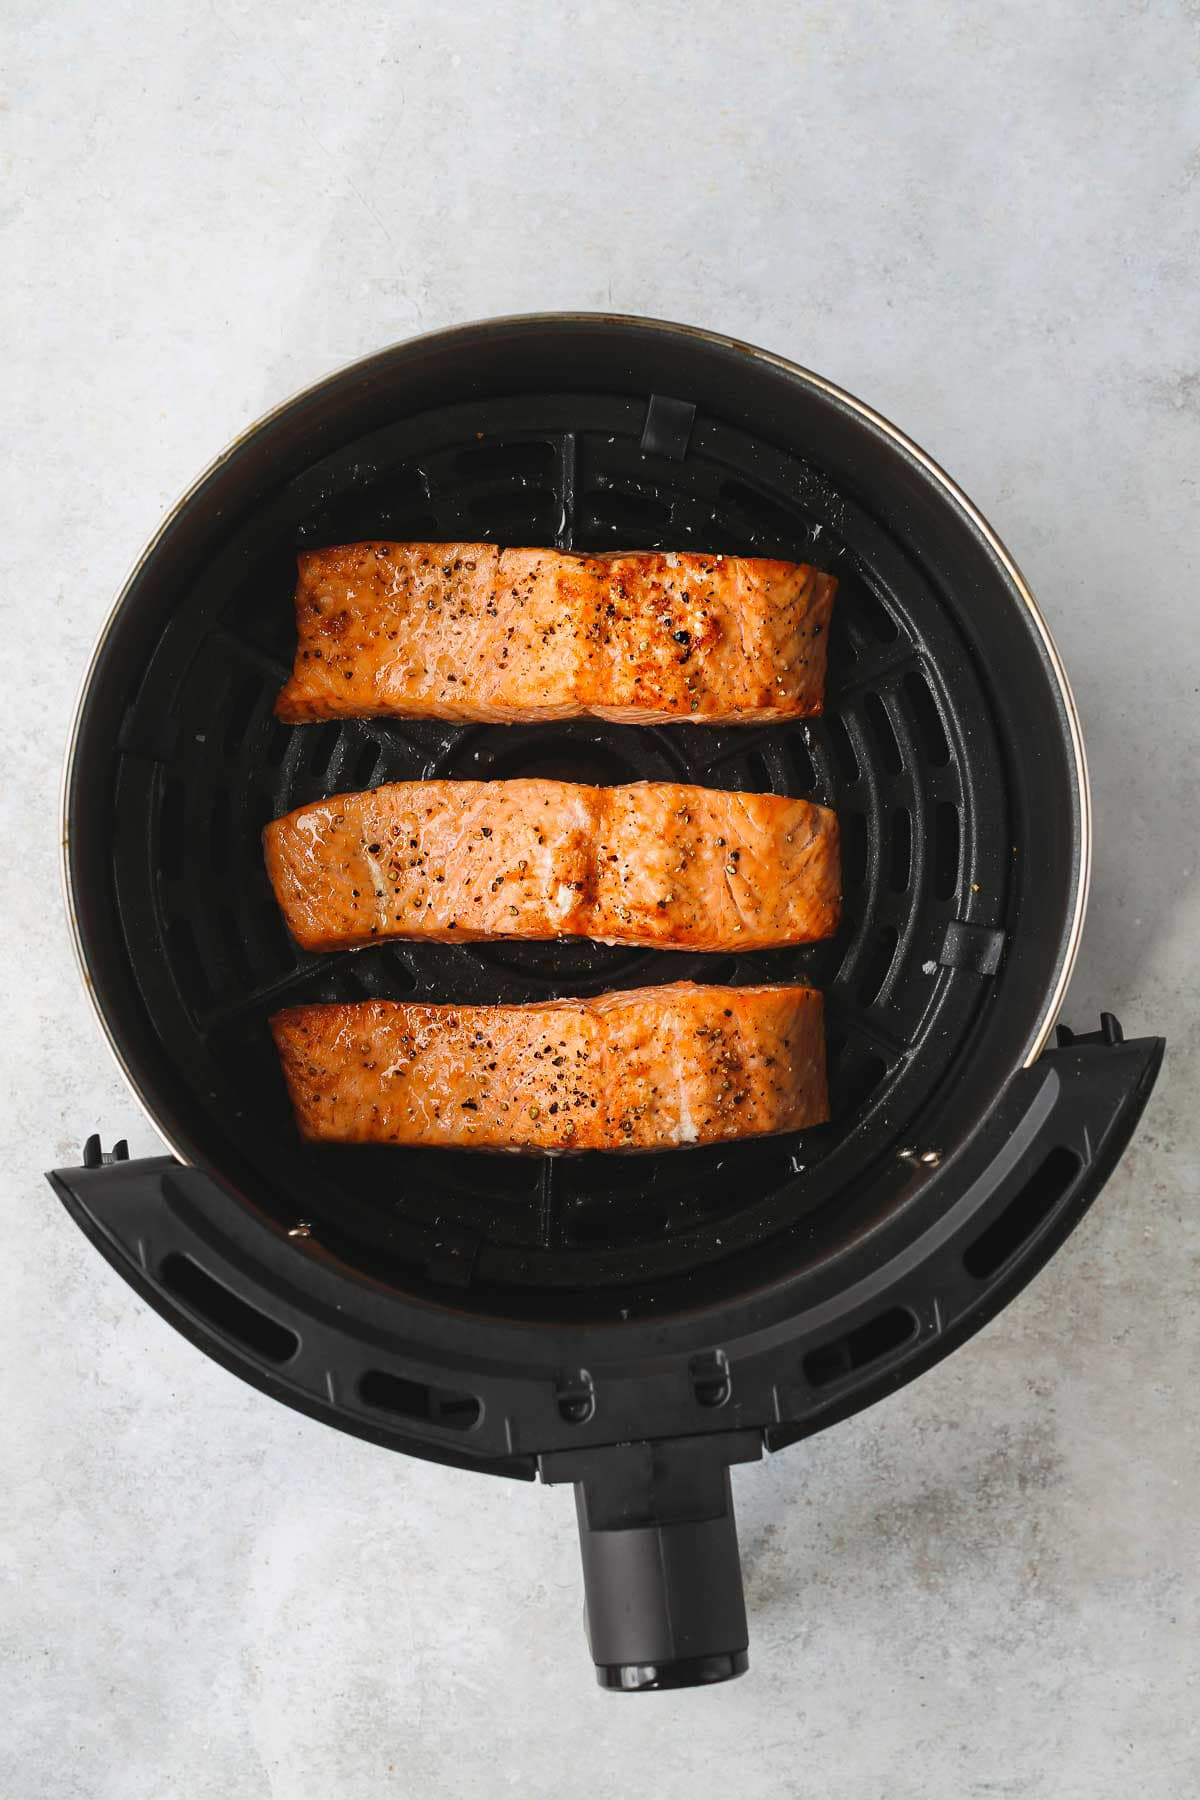 Three air fryer salmon fillets cooked and ready, in the air fryer basket.